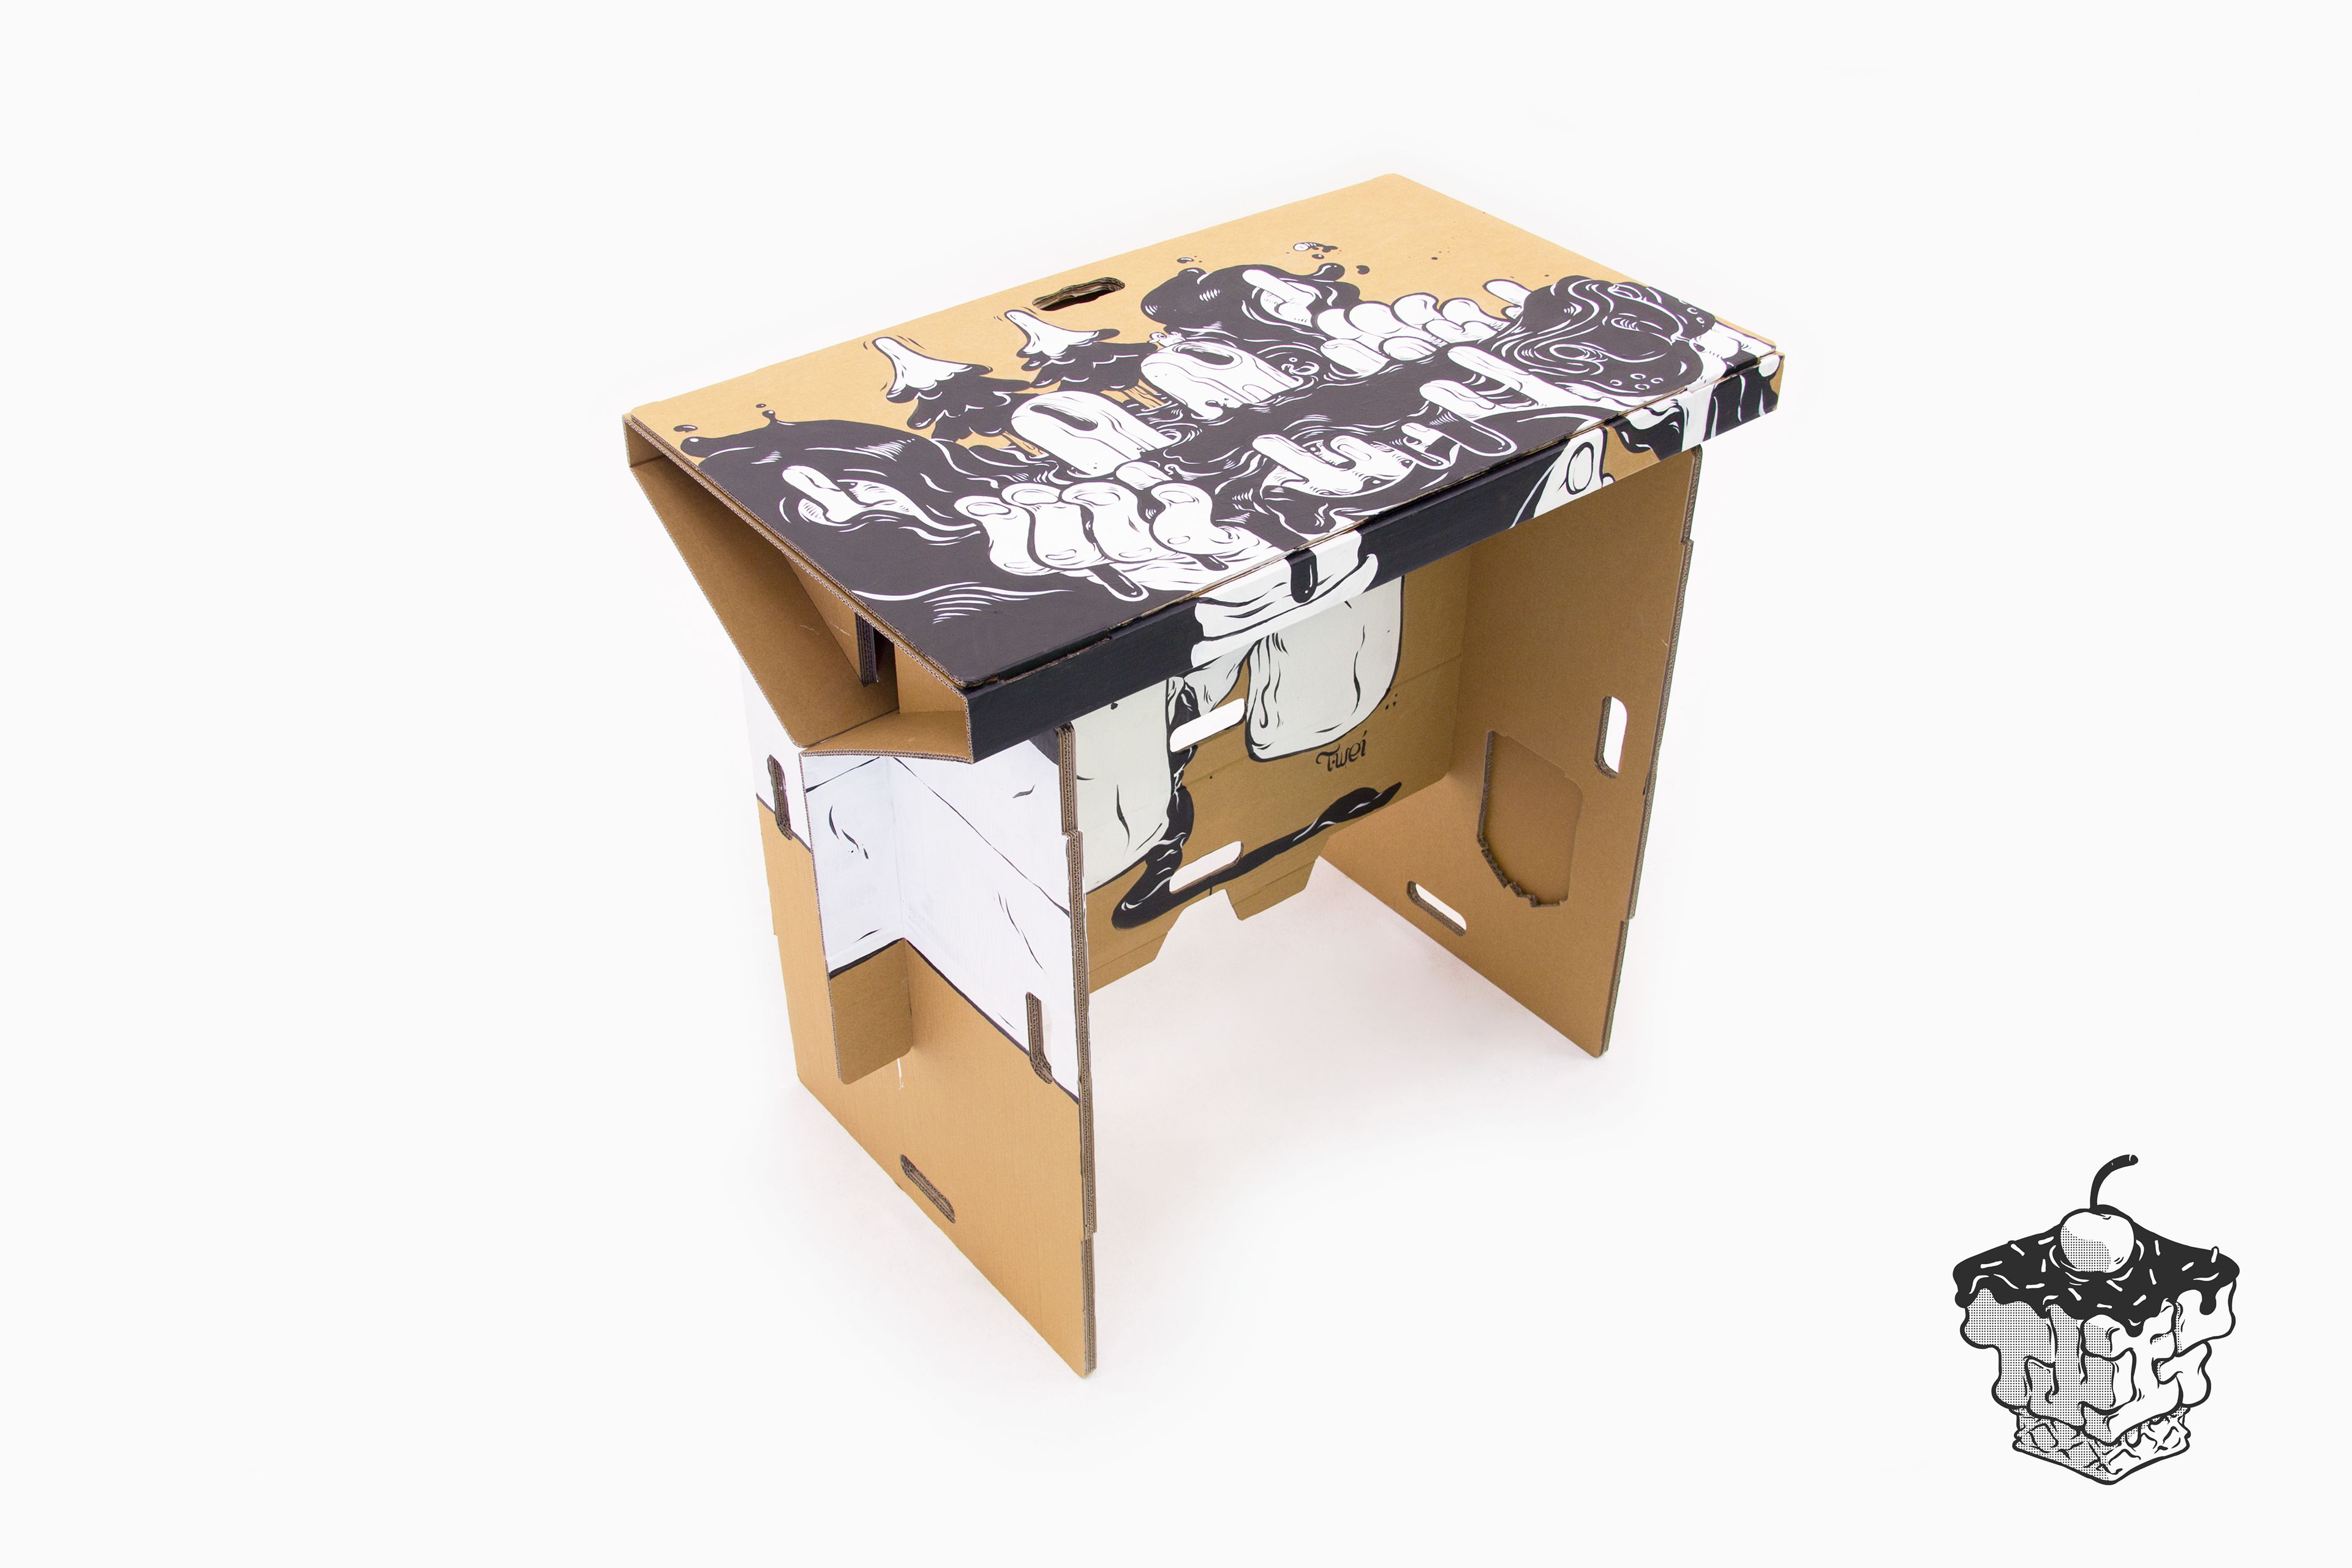 cool two cardboard transform ways hunting new flexible large standing thumb desk design options